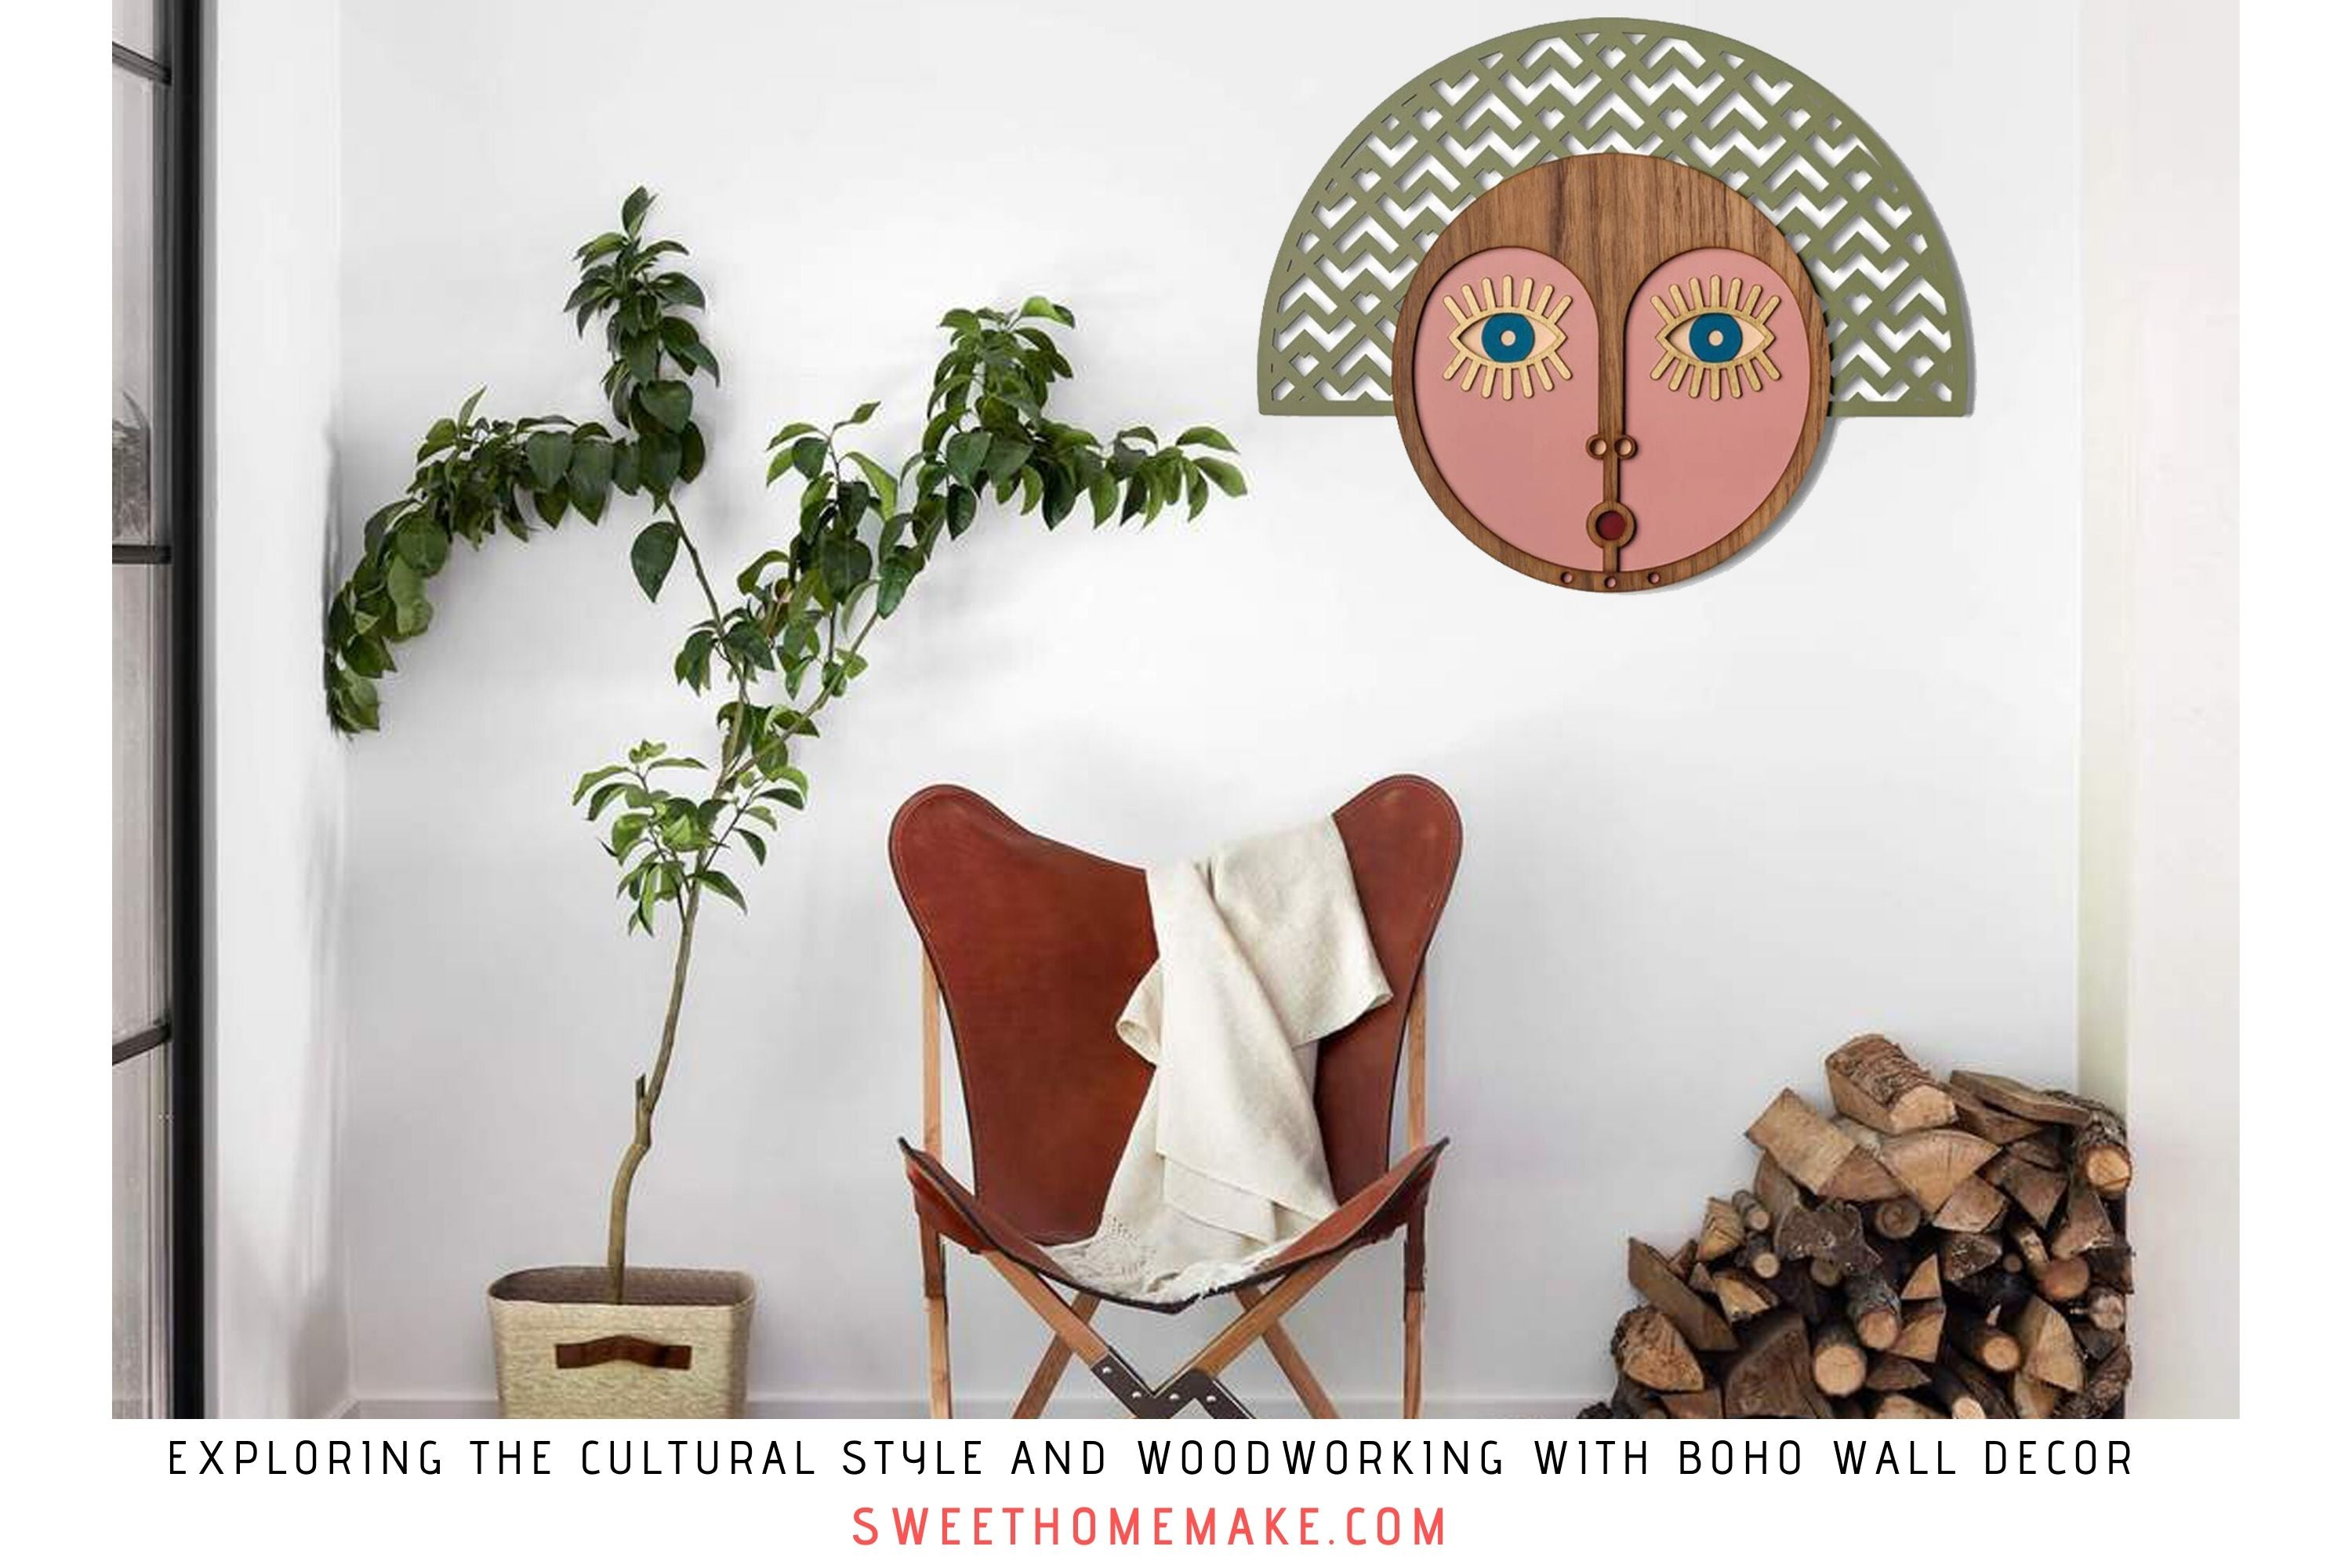 Exploring the Cultural Style and Woodworking with Boho Wall Decor